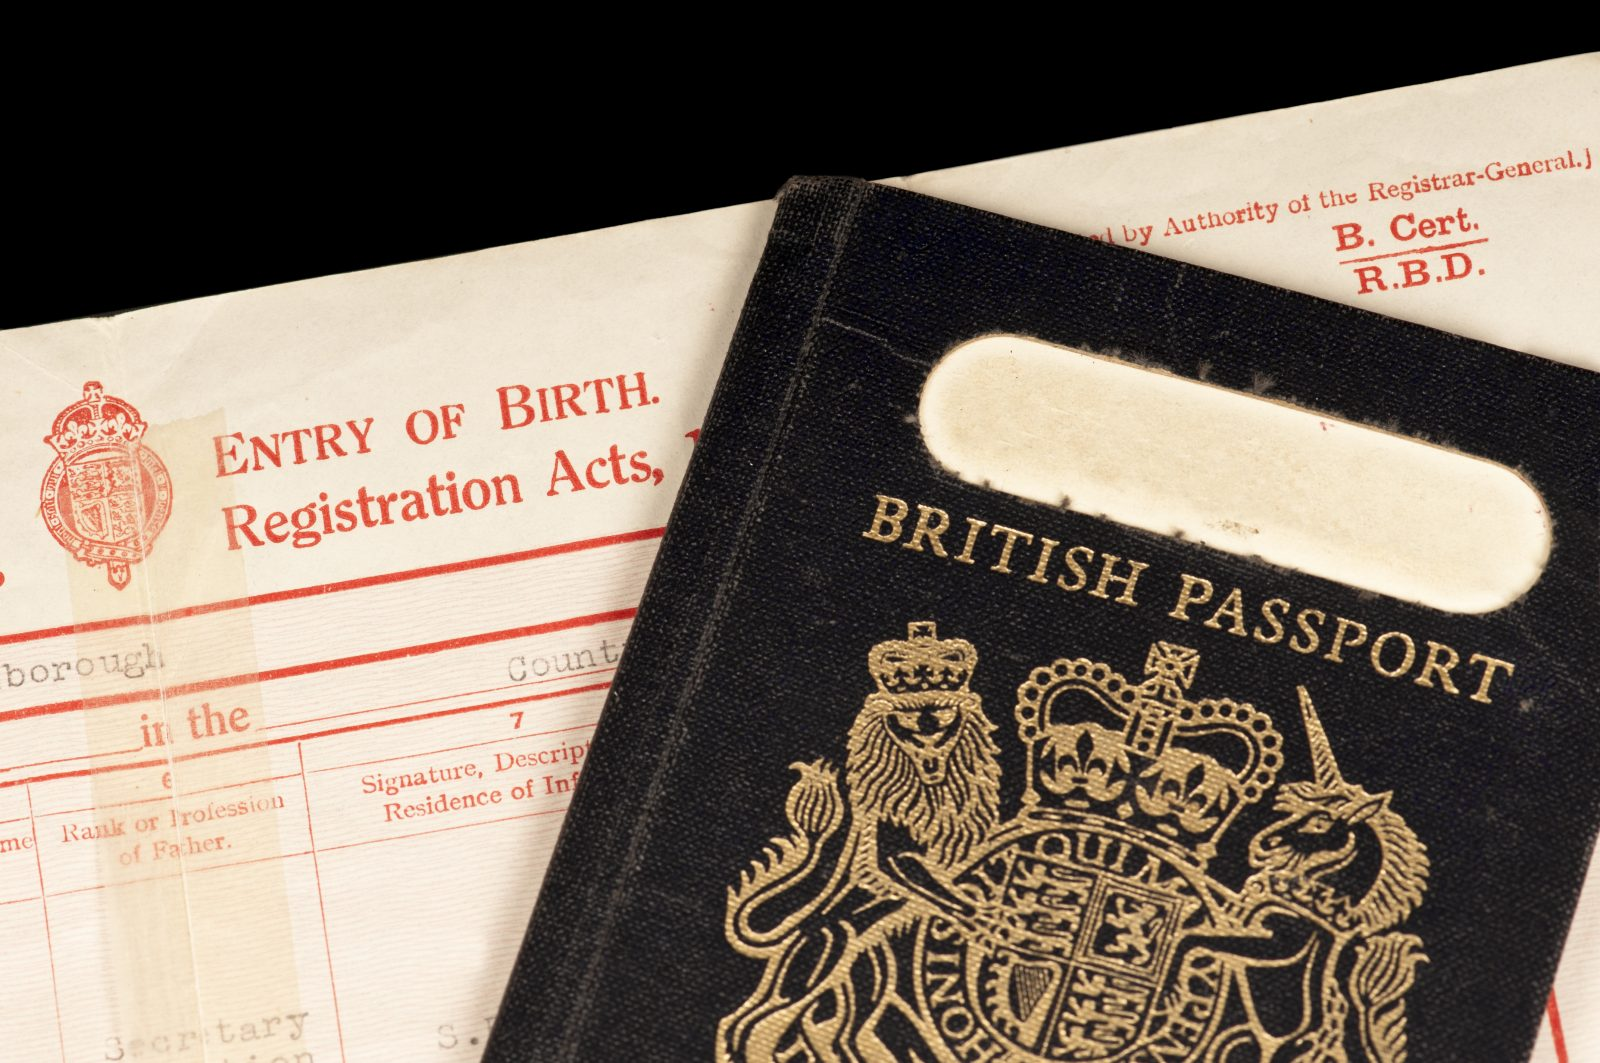 Blue passports are just chufty badges for thick fucks